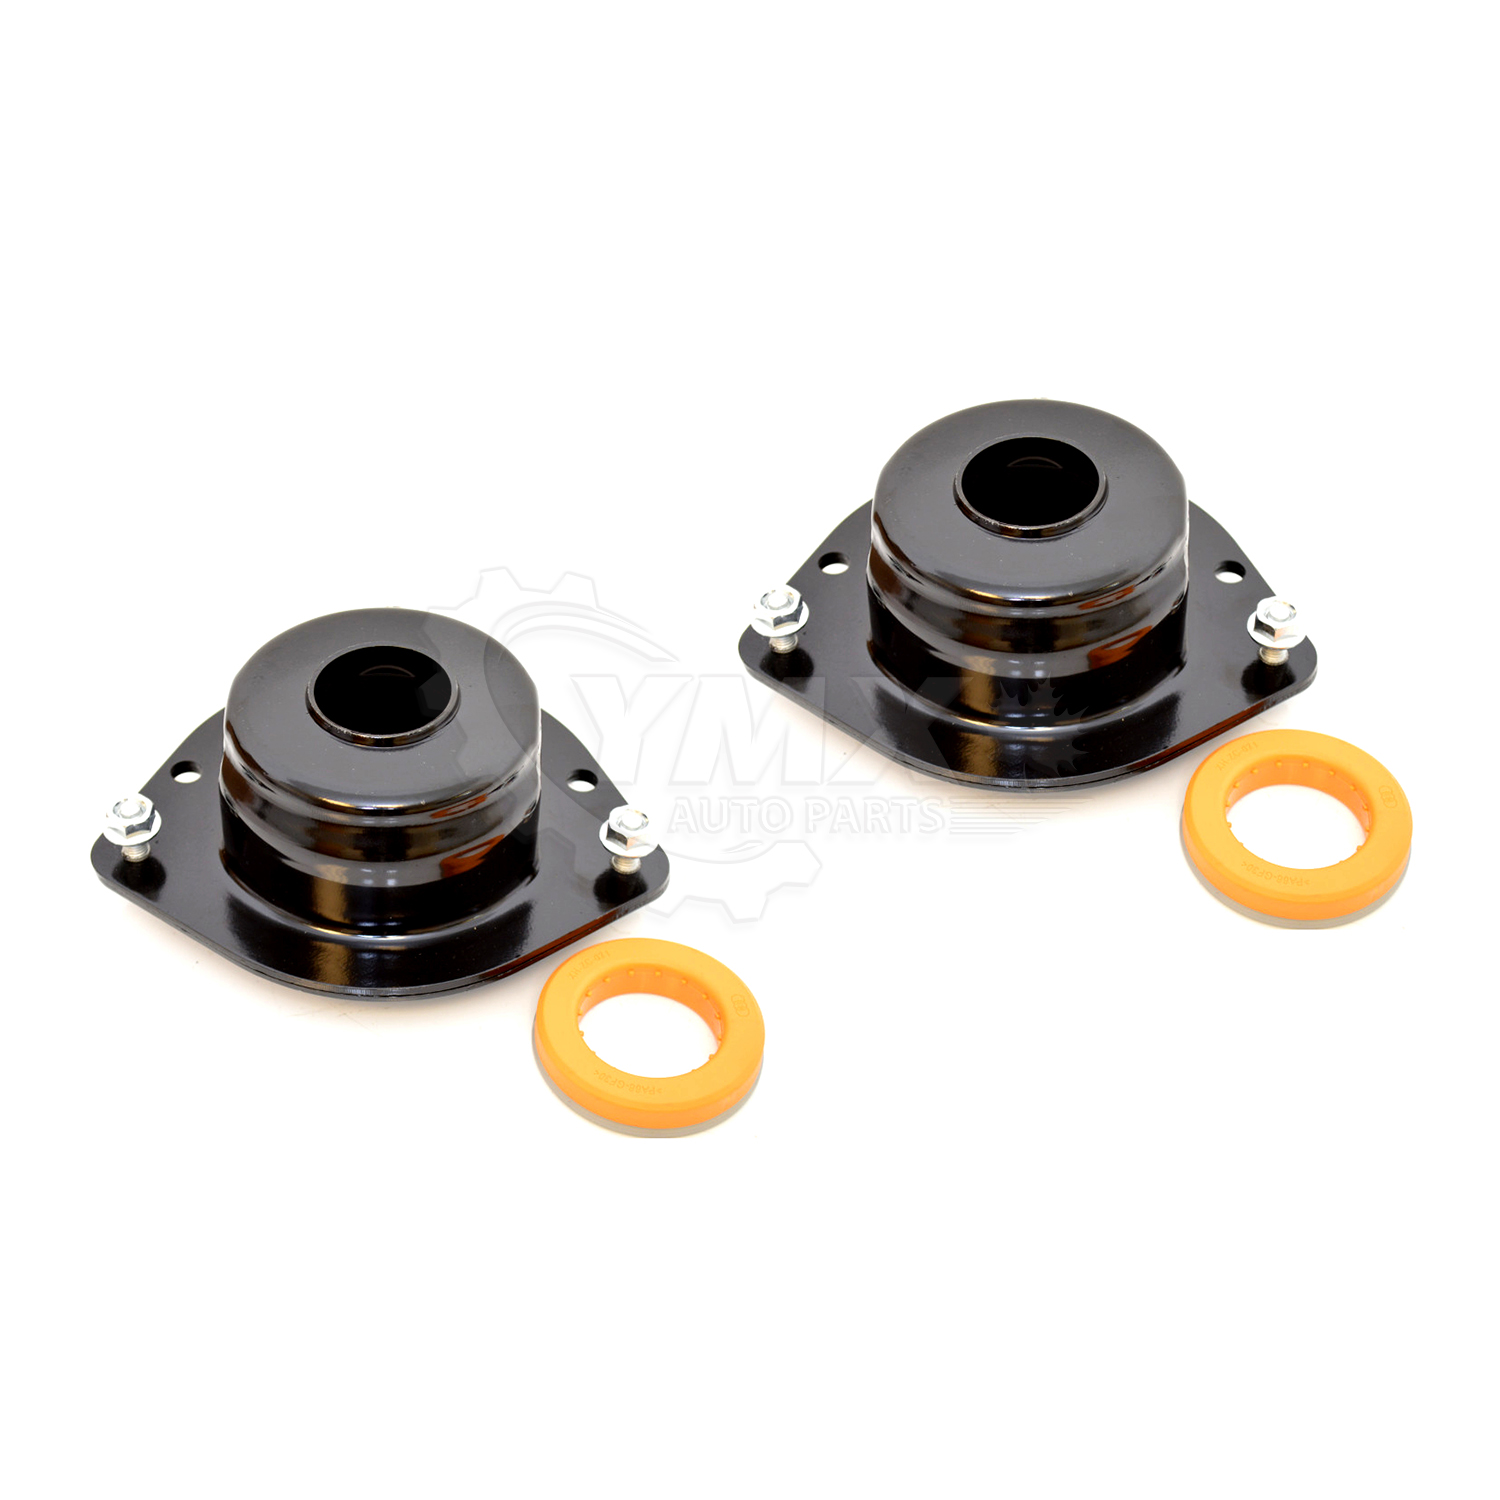 New Pair Front Mount Kit For 1995-2000 Chrysler Plymouth